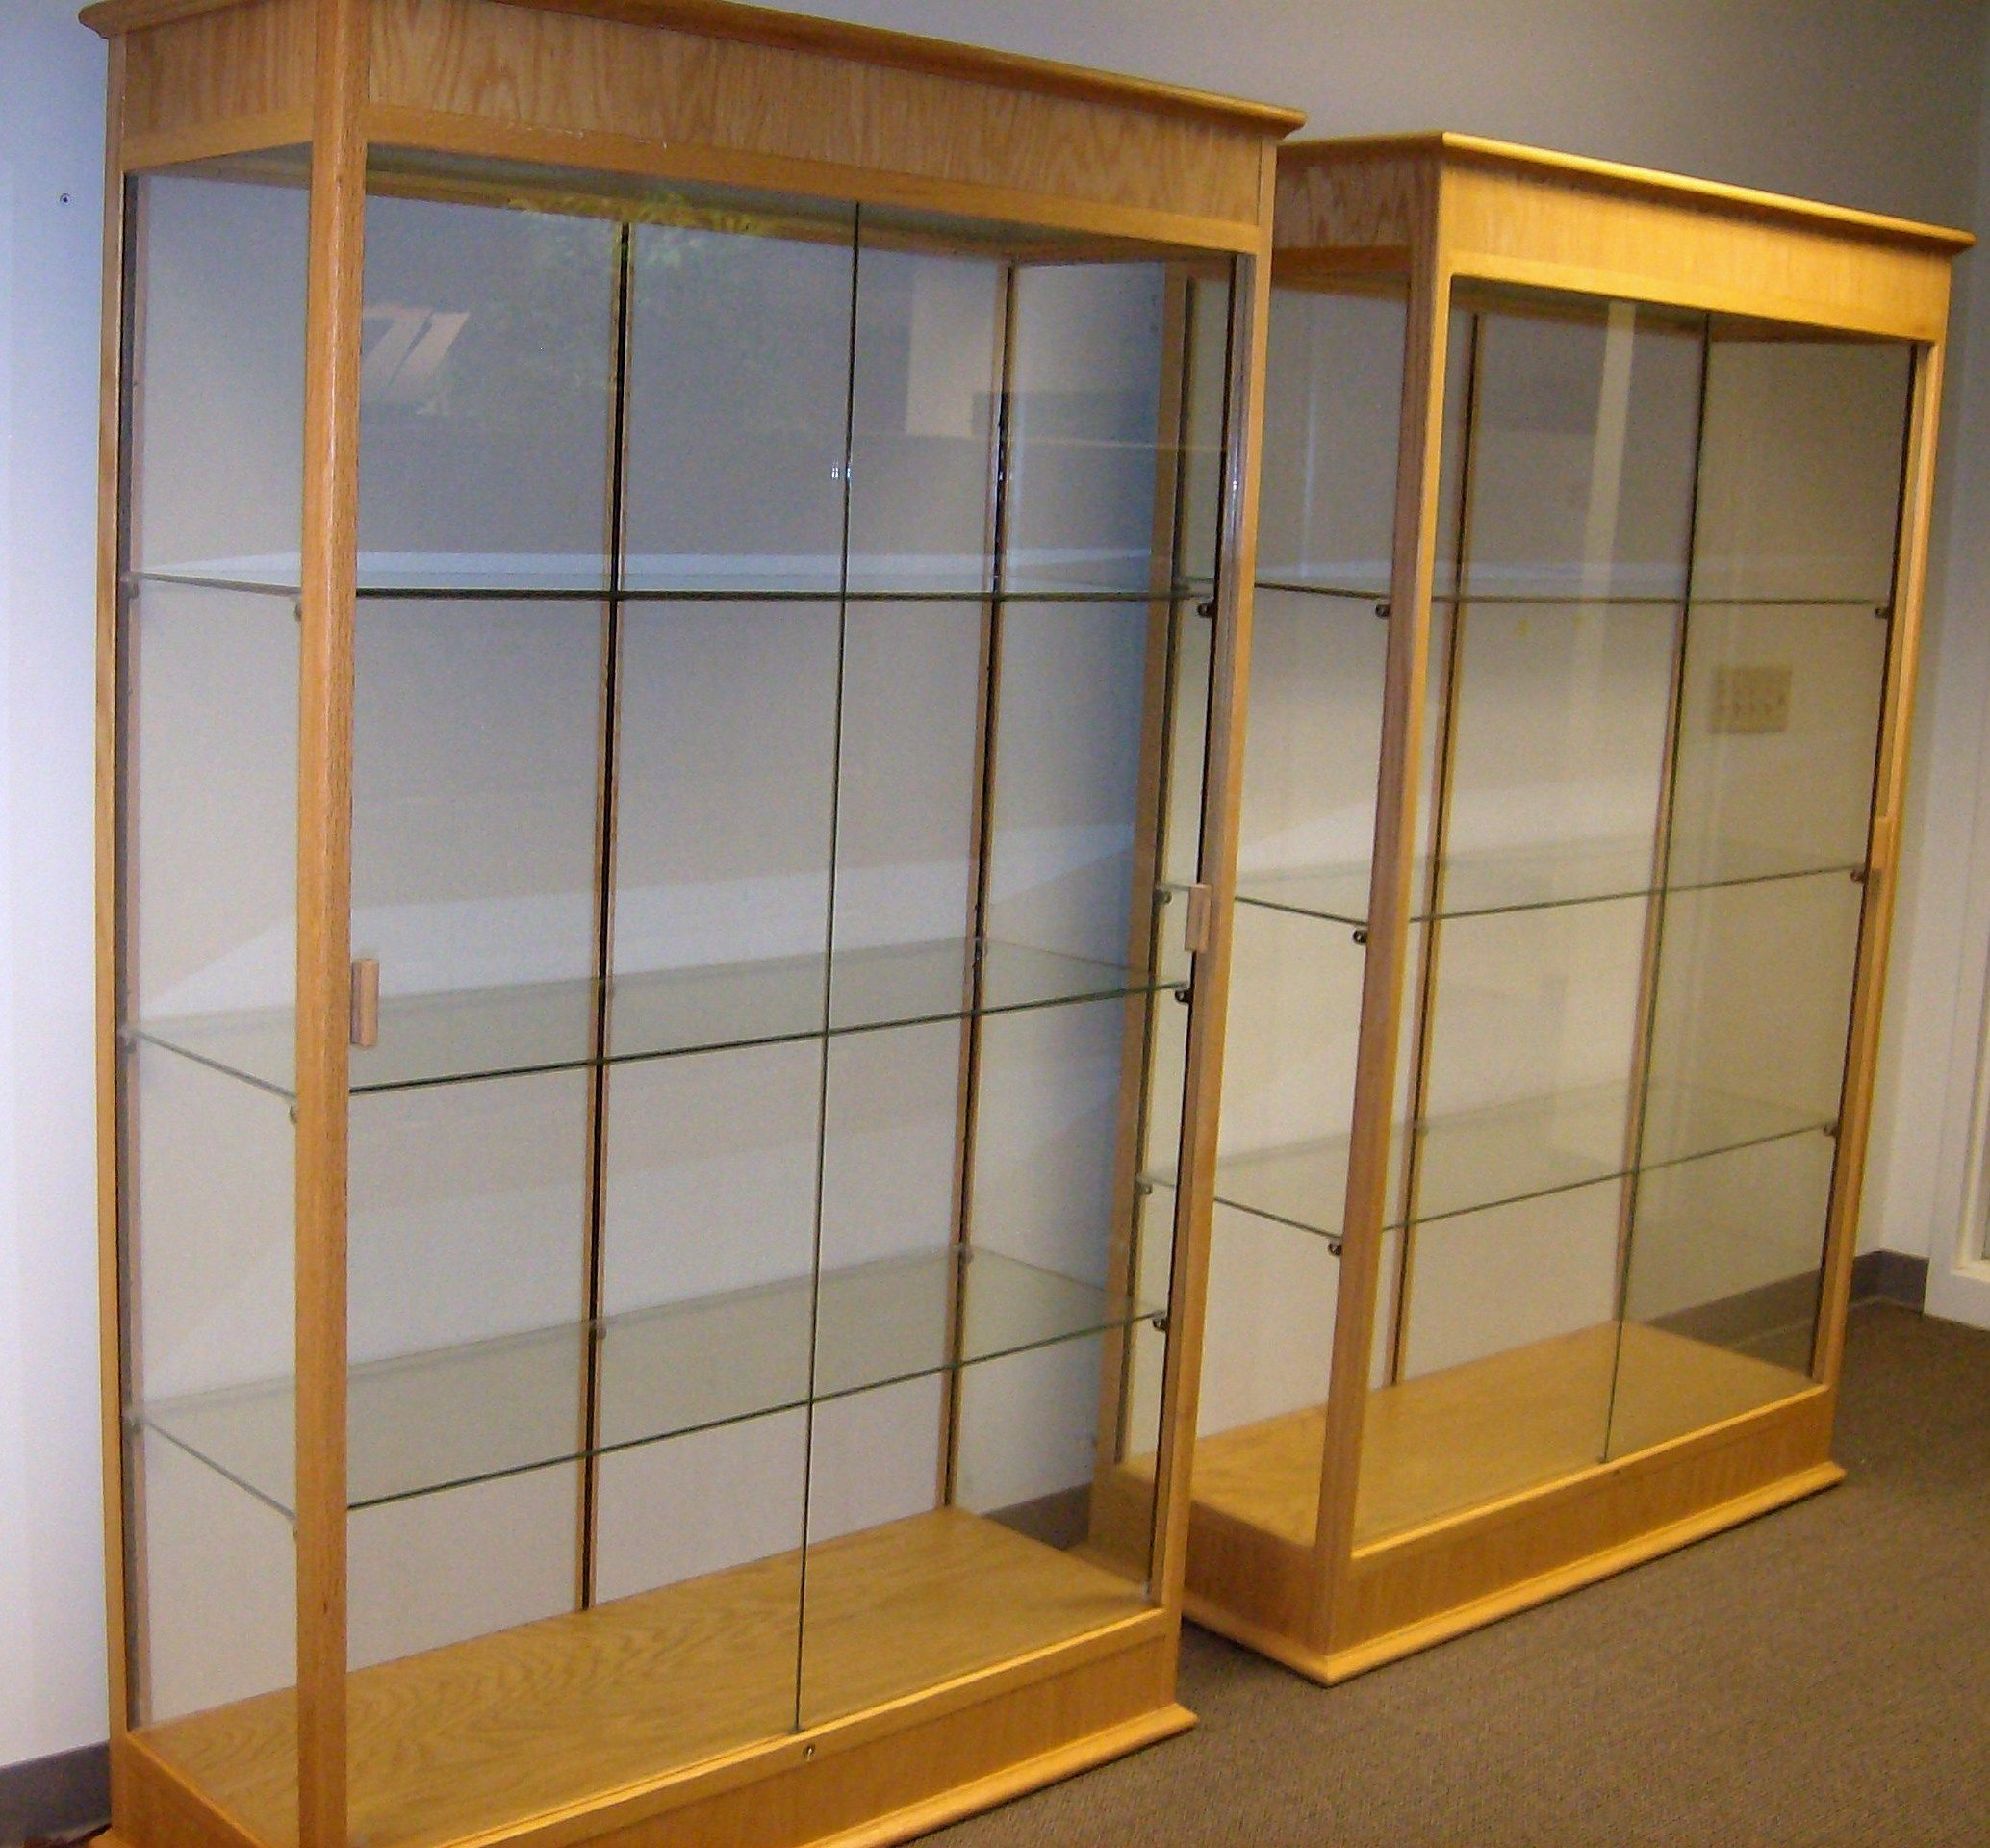 Glass Display Cabinet Display Cabinets Description Display Cabinets Jpg